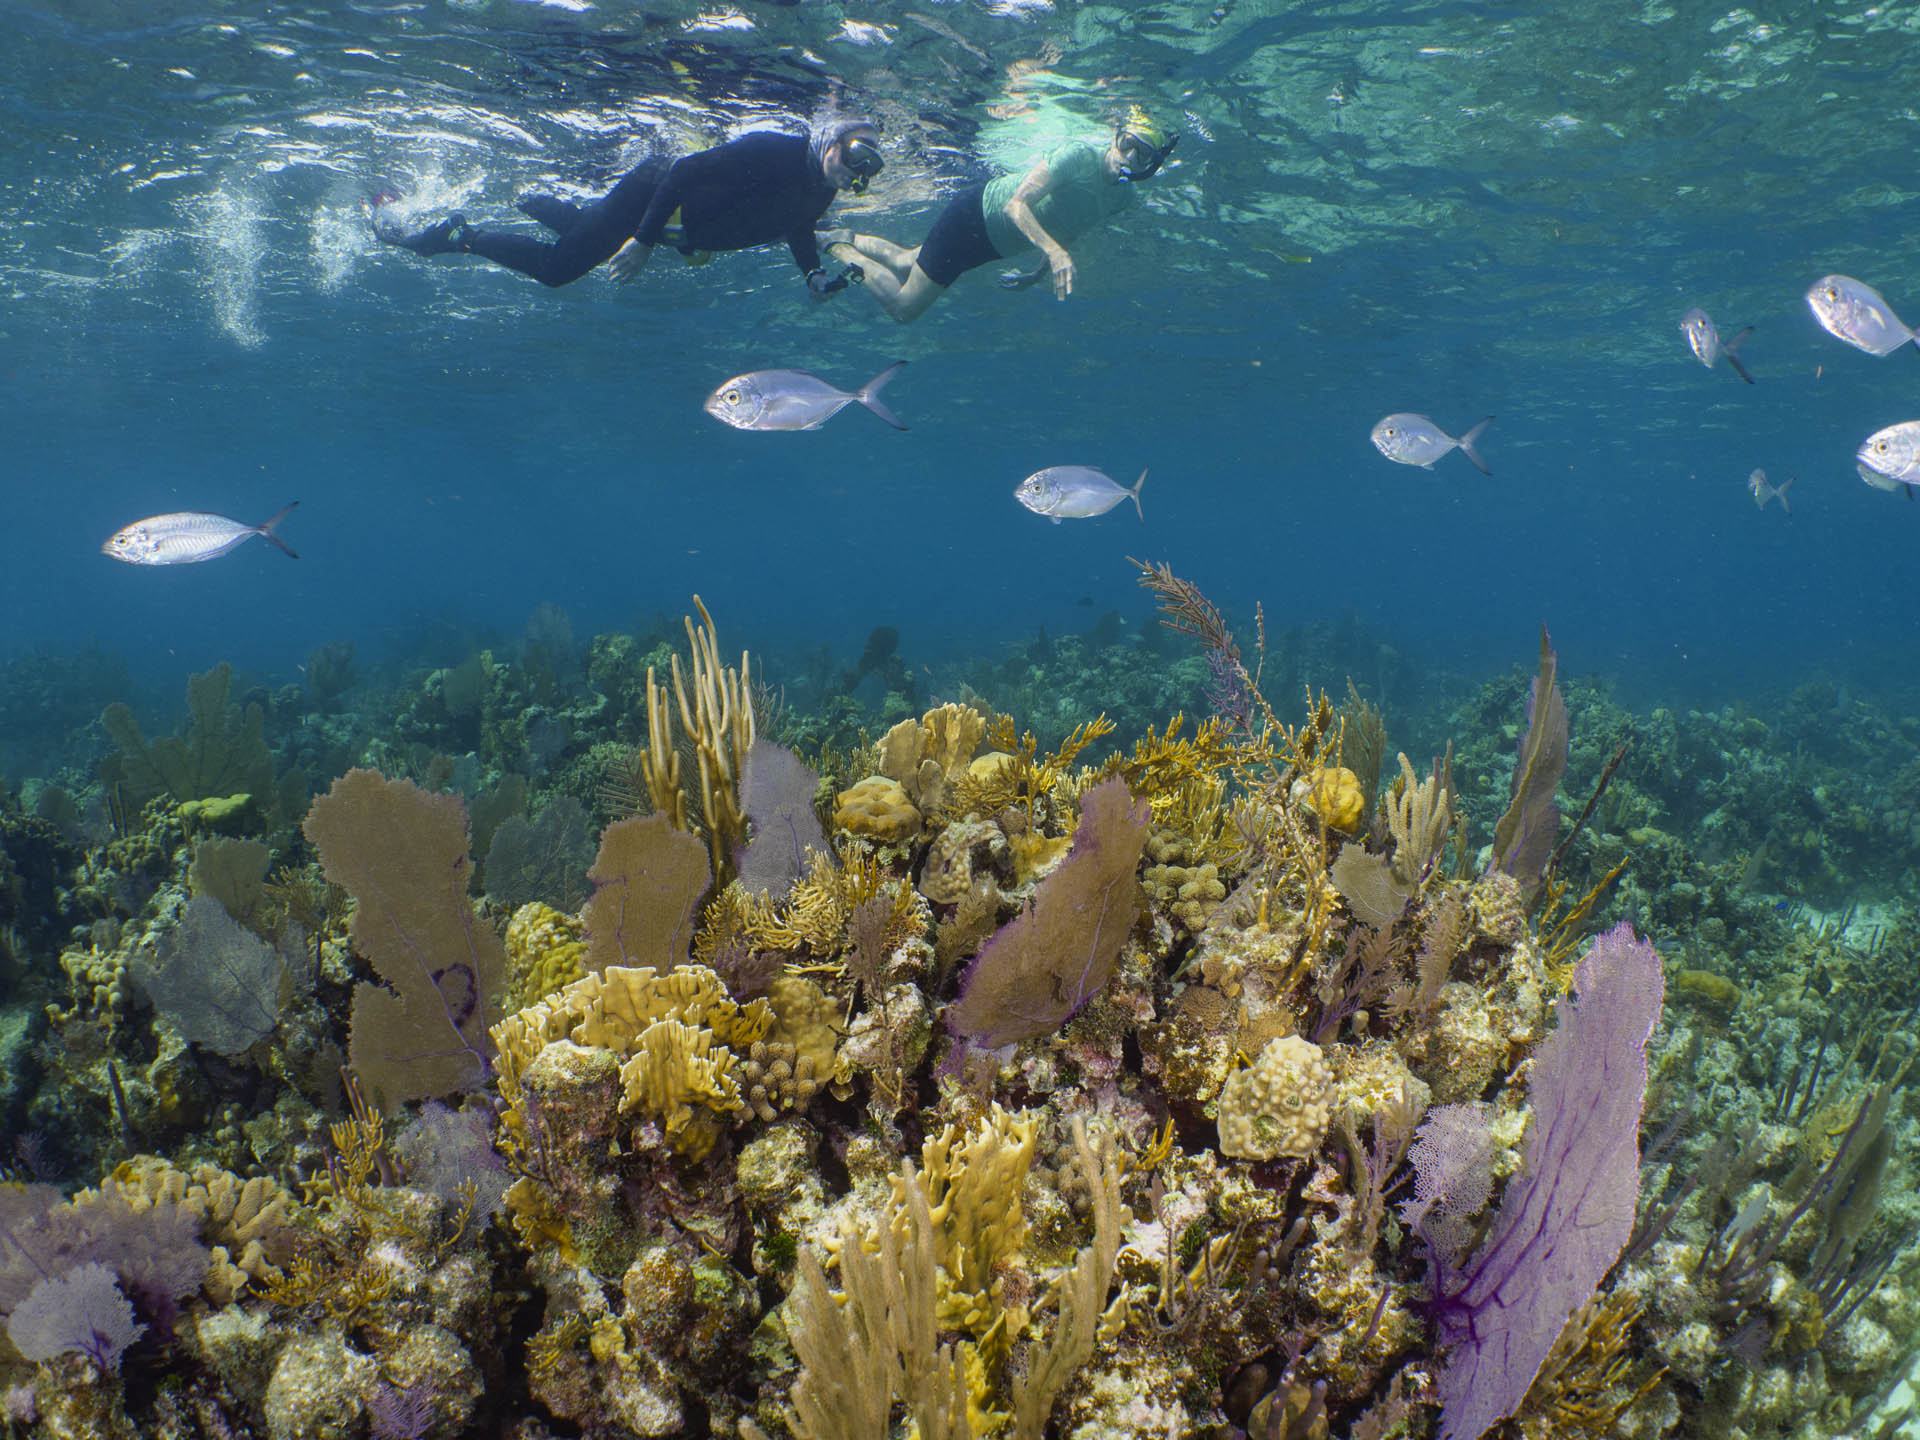 two snorkelers swiming over coral reef with silver fish swimming underneath